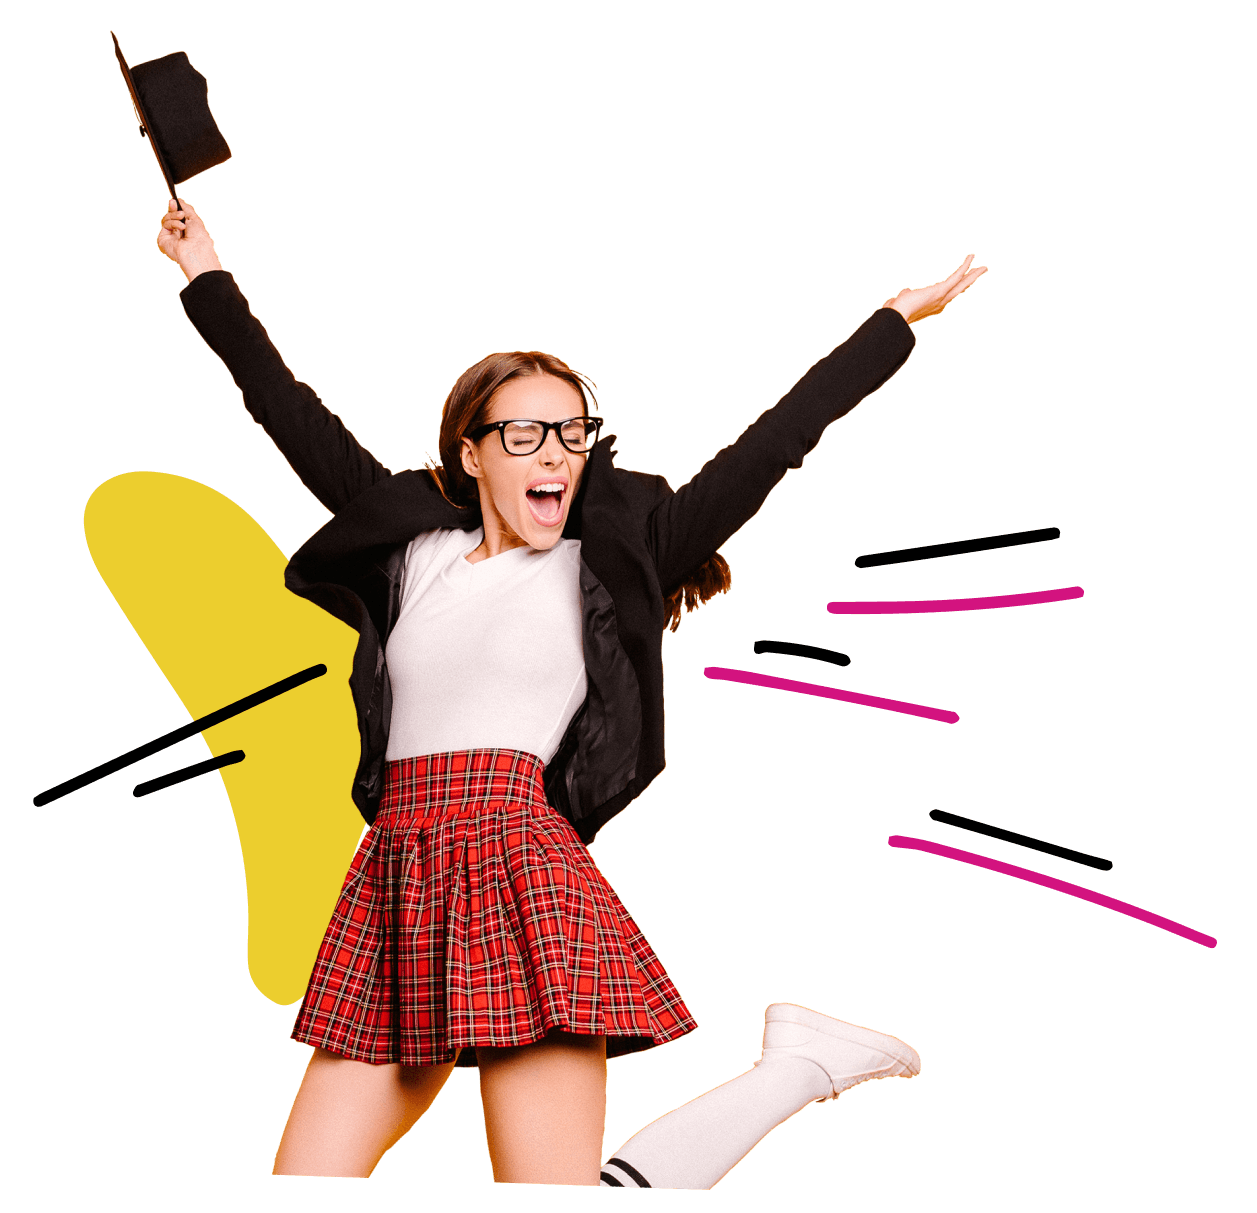 Joyful female student at high school graduation in a plaid skirt and blazer jumping excitedly in the air waving a graduation cap